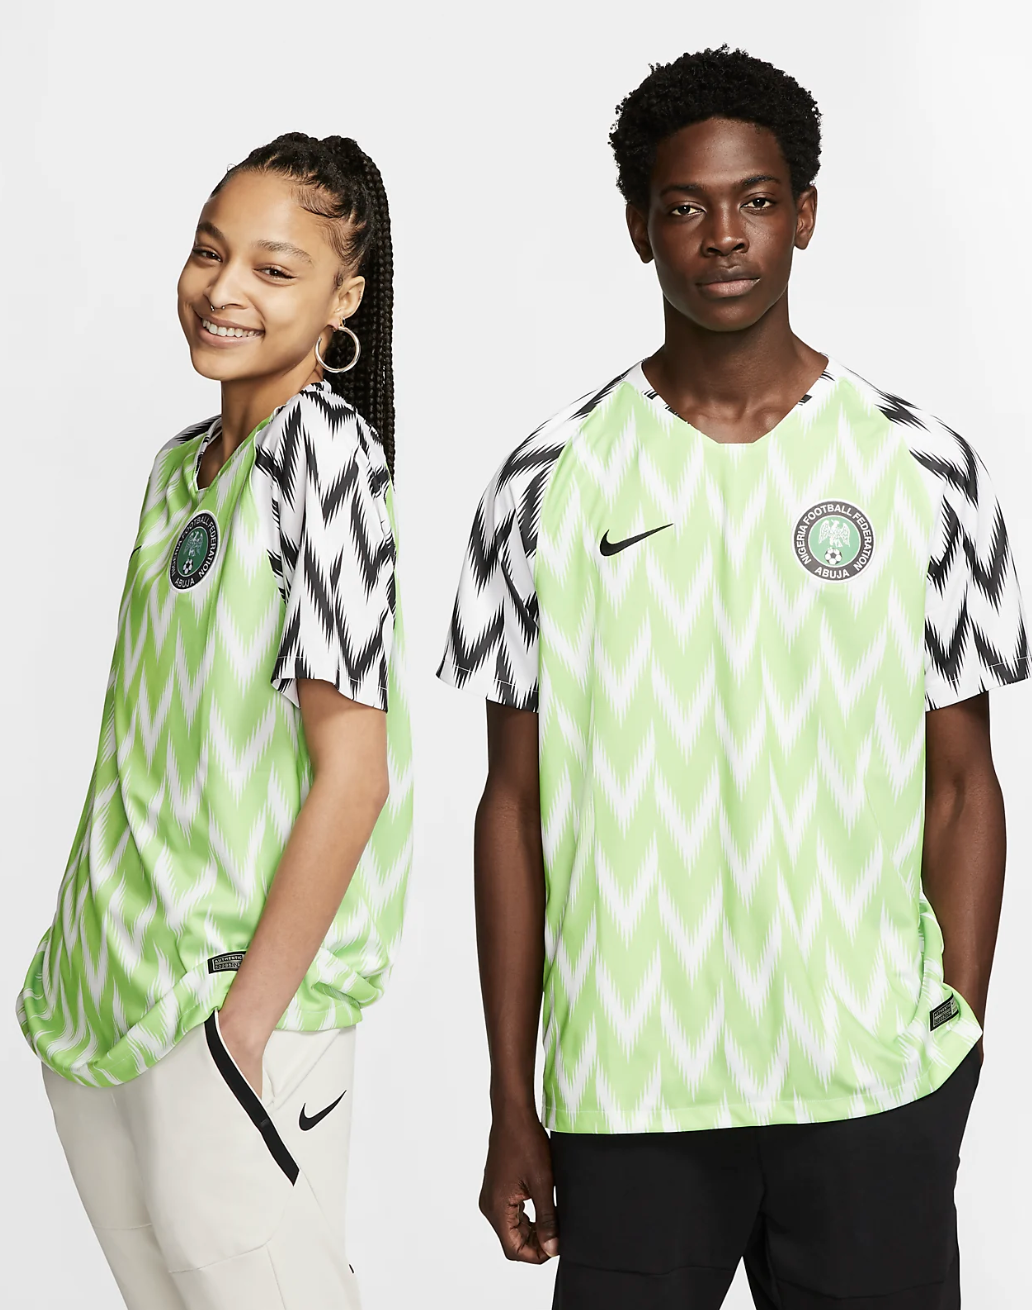 finest selection bcd77 2578f Now Available: 2019 Nike Nigeria Stadium Soccer Jersey ...